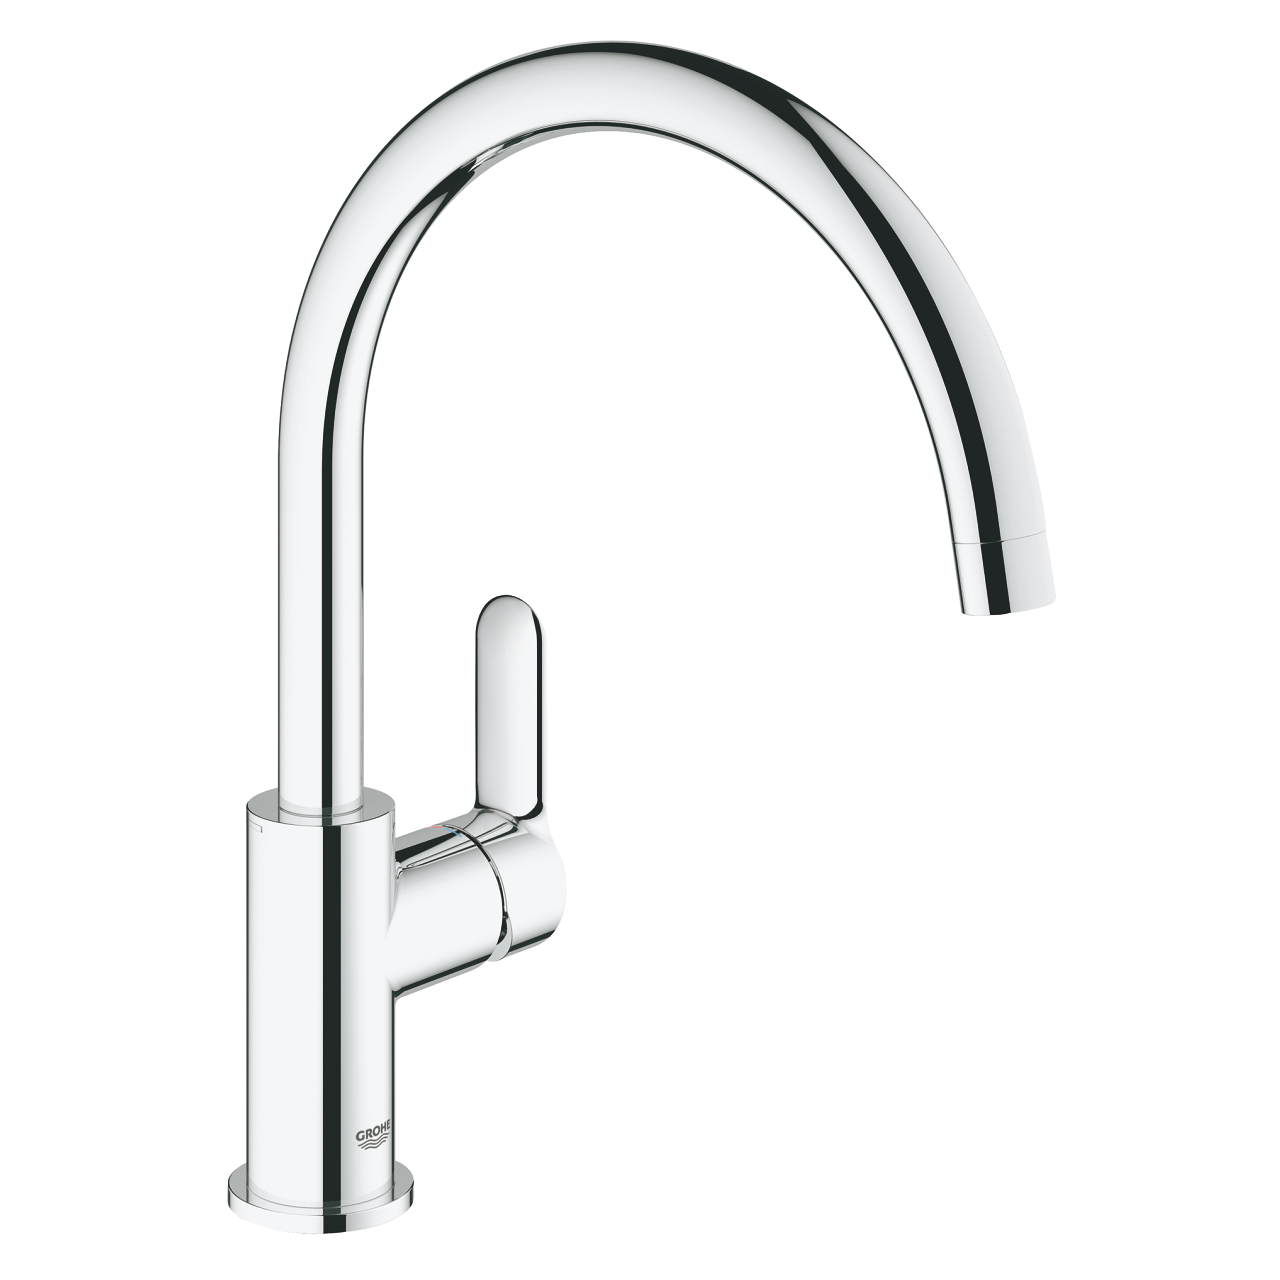 GROHE - Bauedge Single Level Sink Mixer